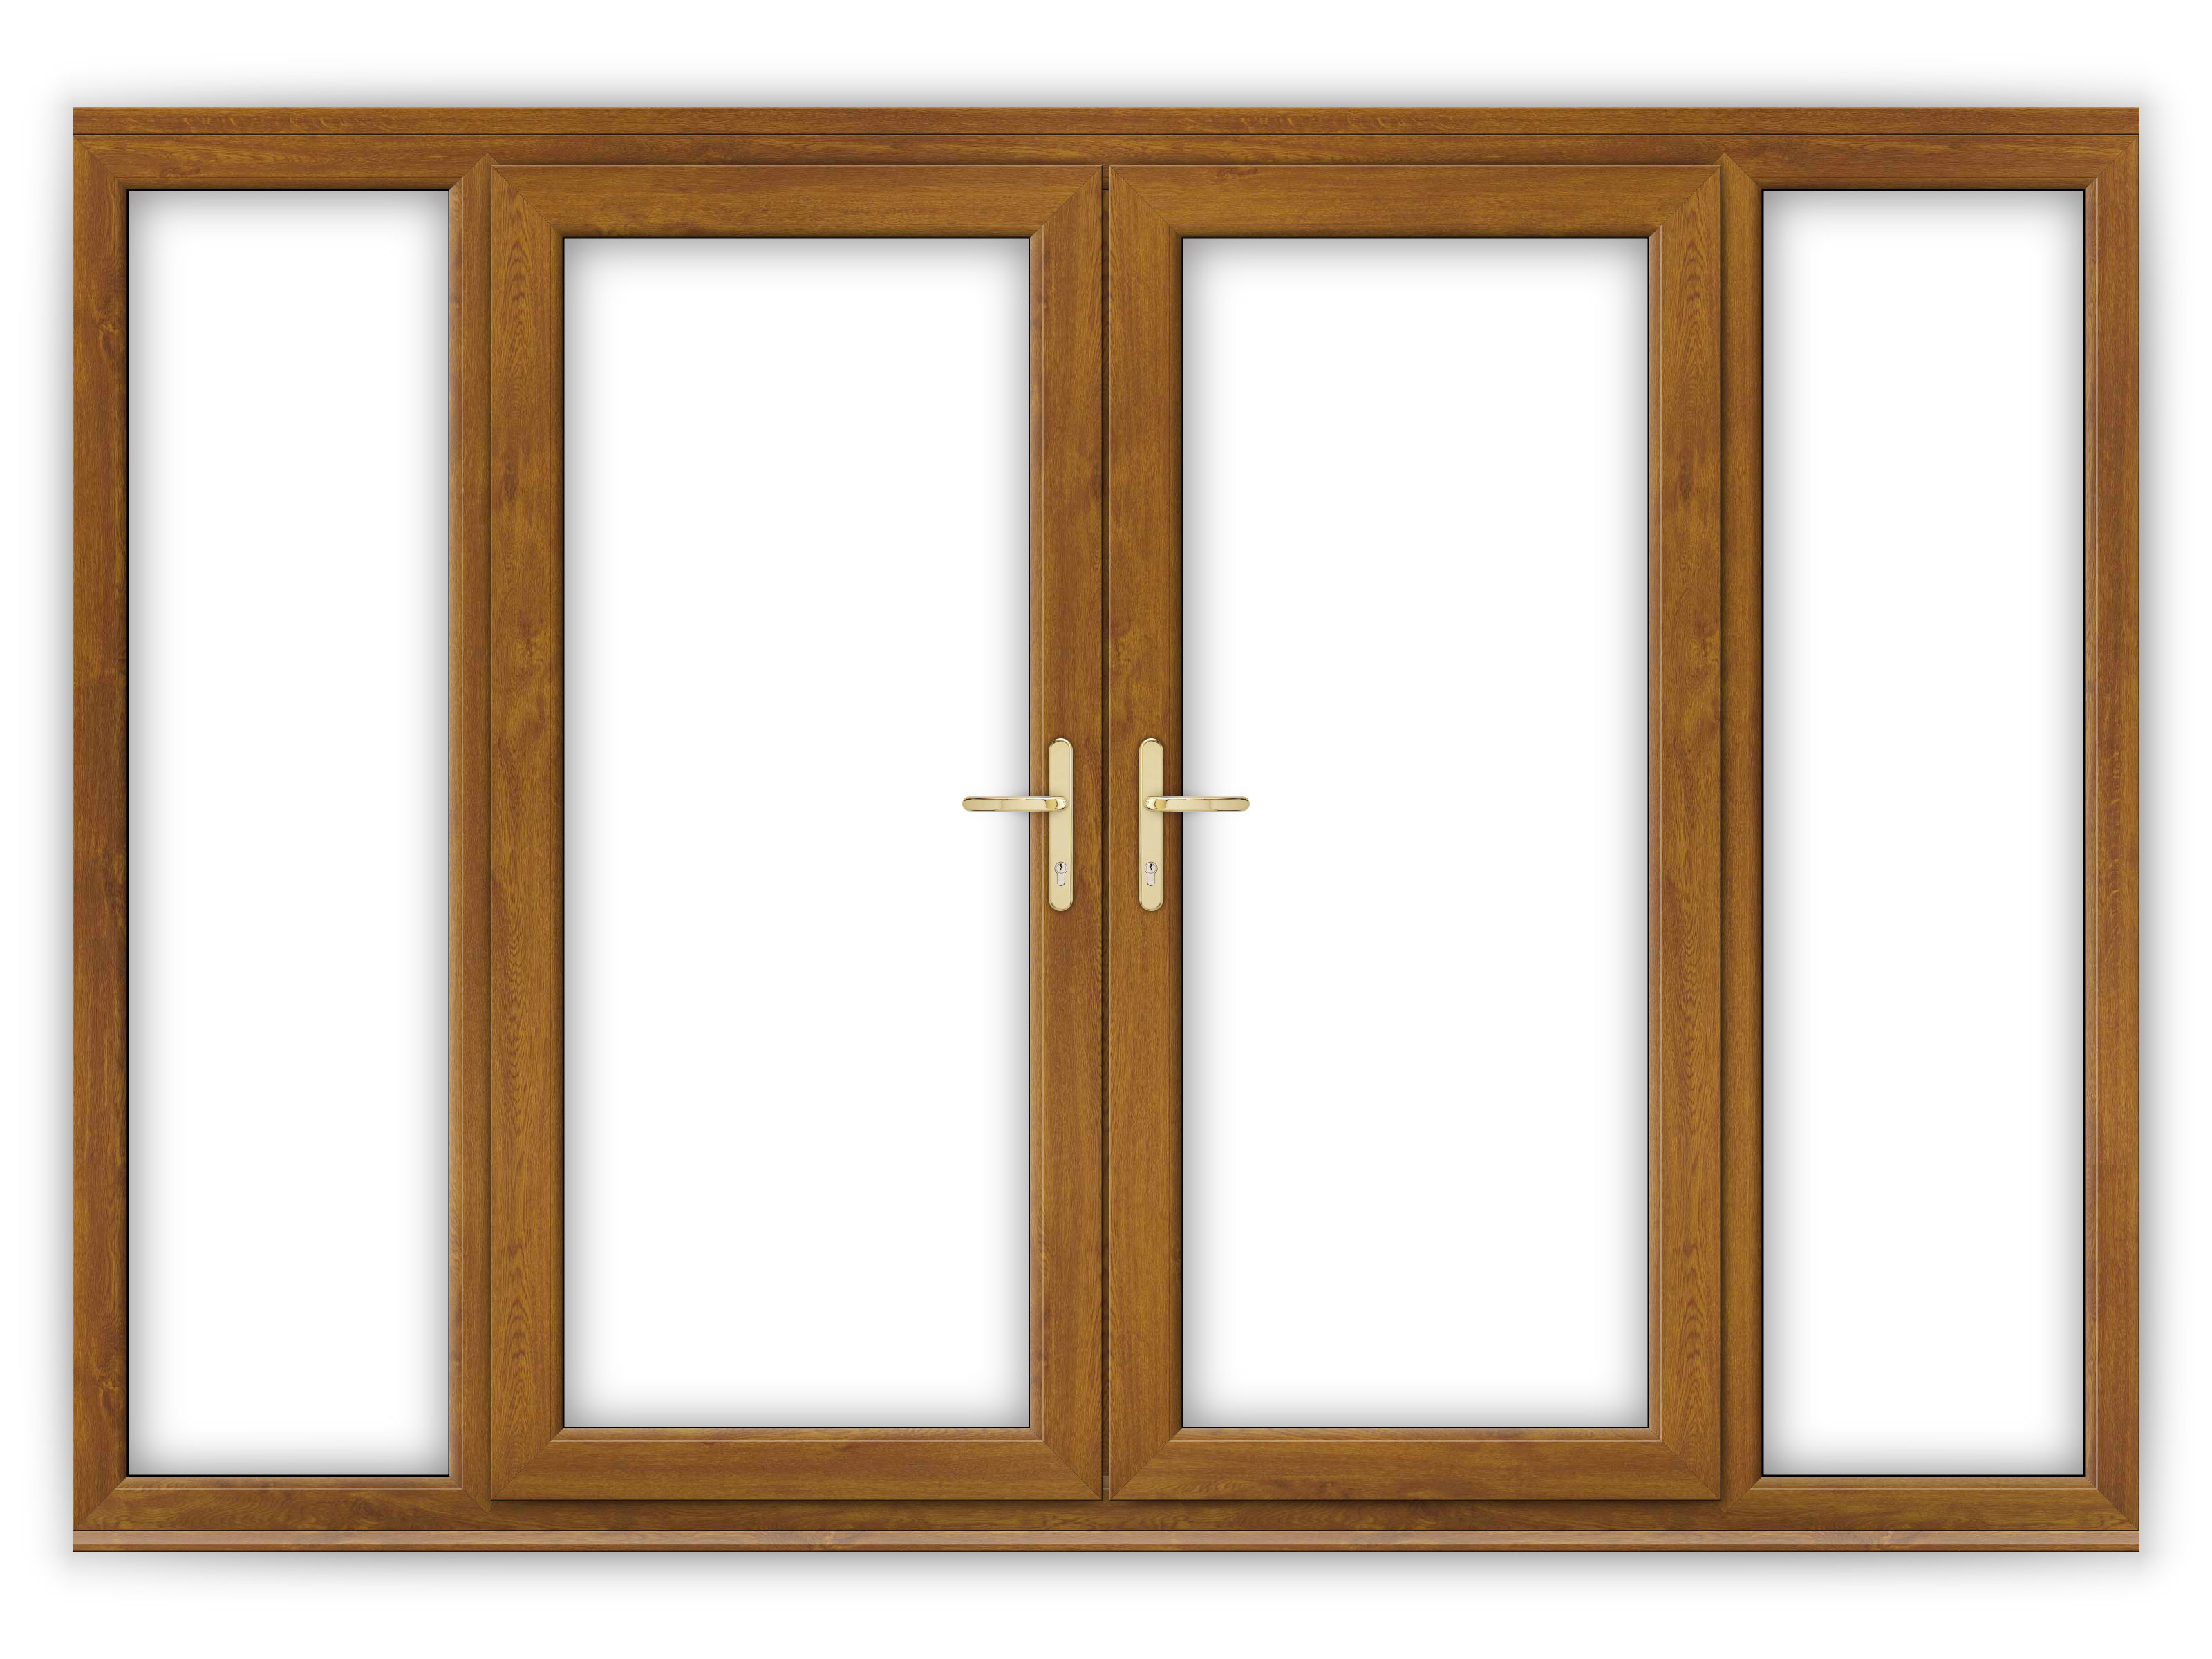 6ft golden oak upvc french doors with wide side panels